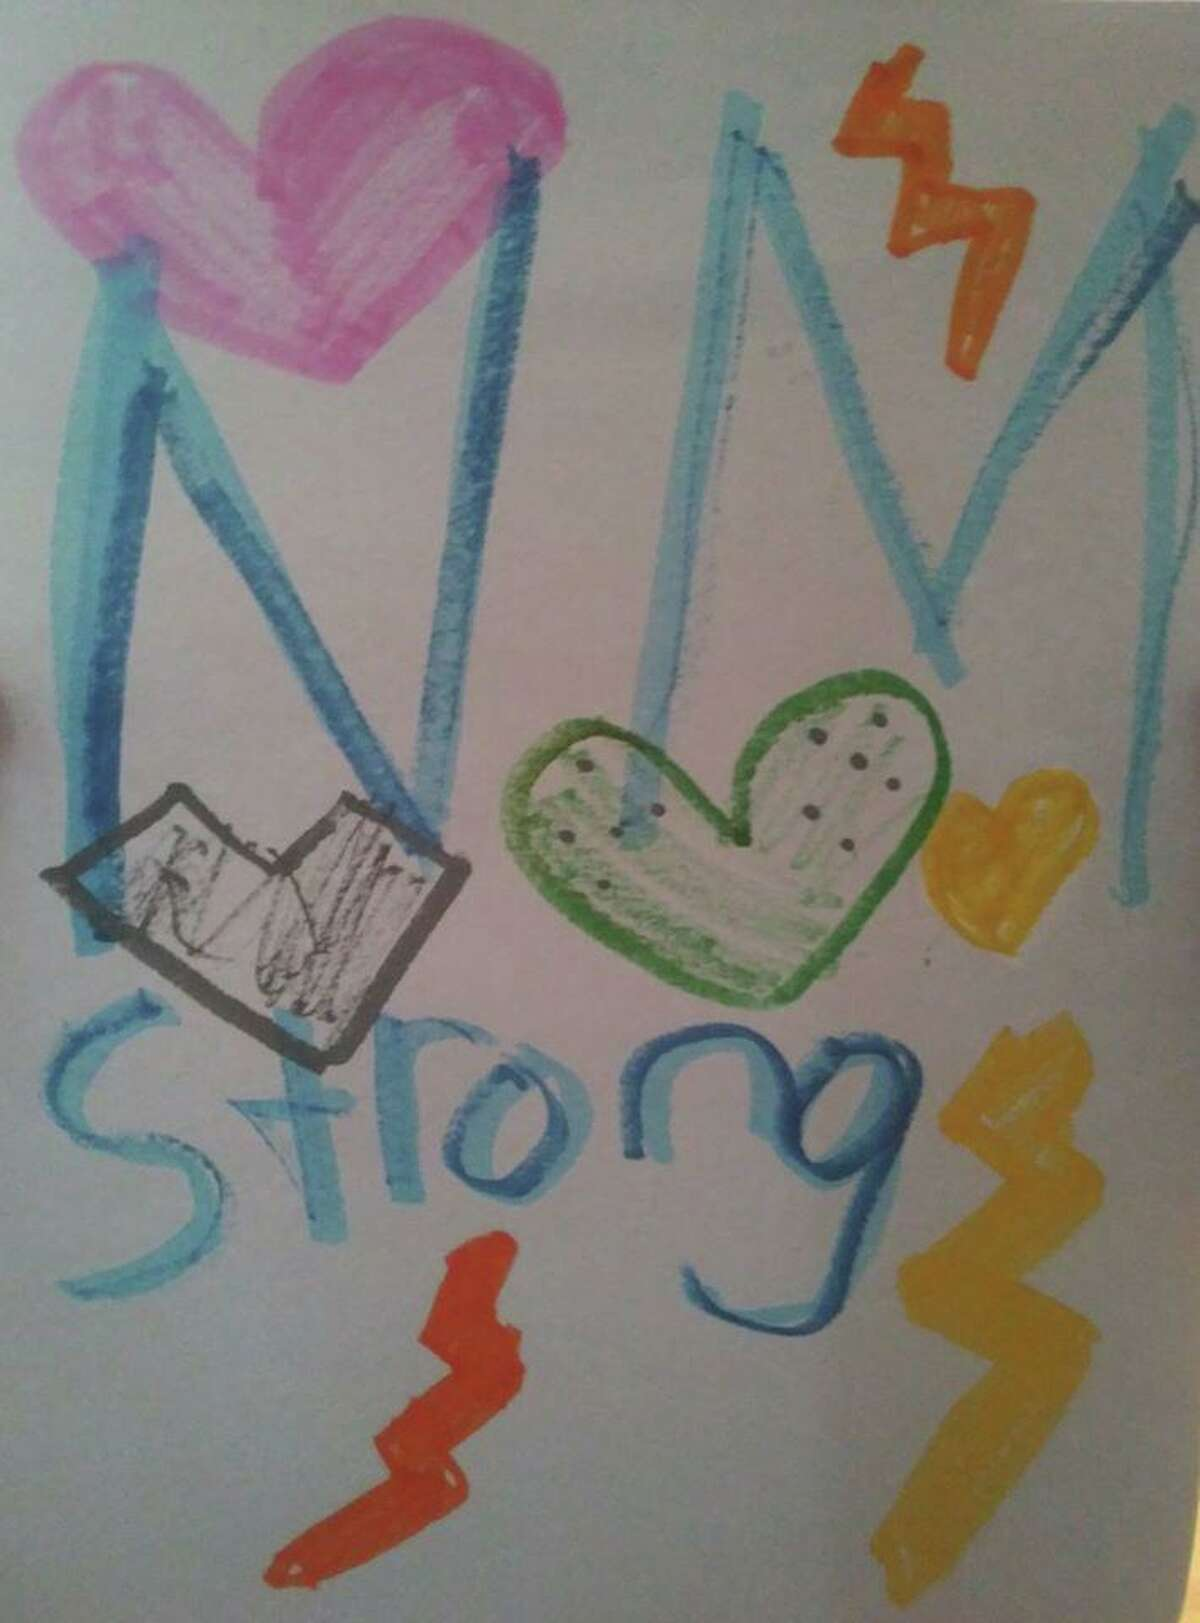 The New Milford Police Department has asked children to make posters with the message New Milford Strong to show support for first responders during the coronavirus pandemic.